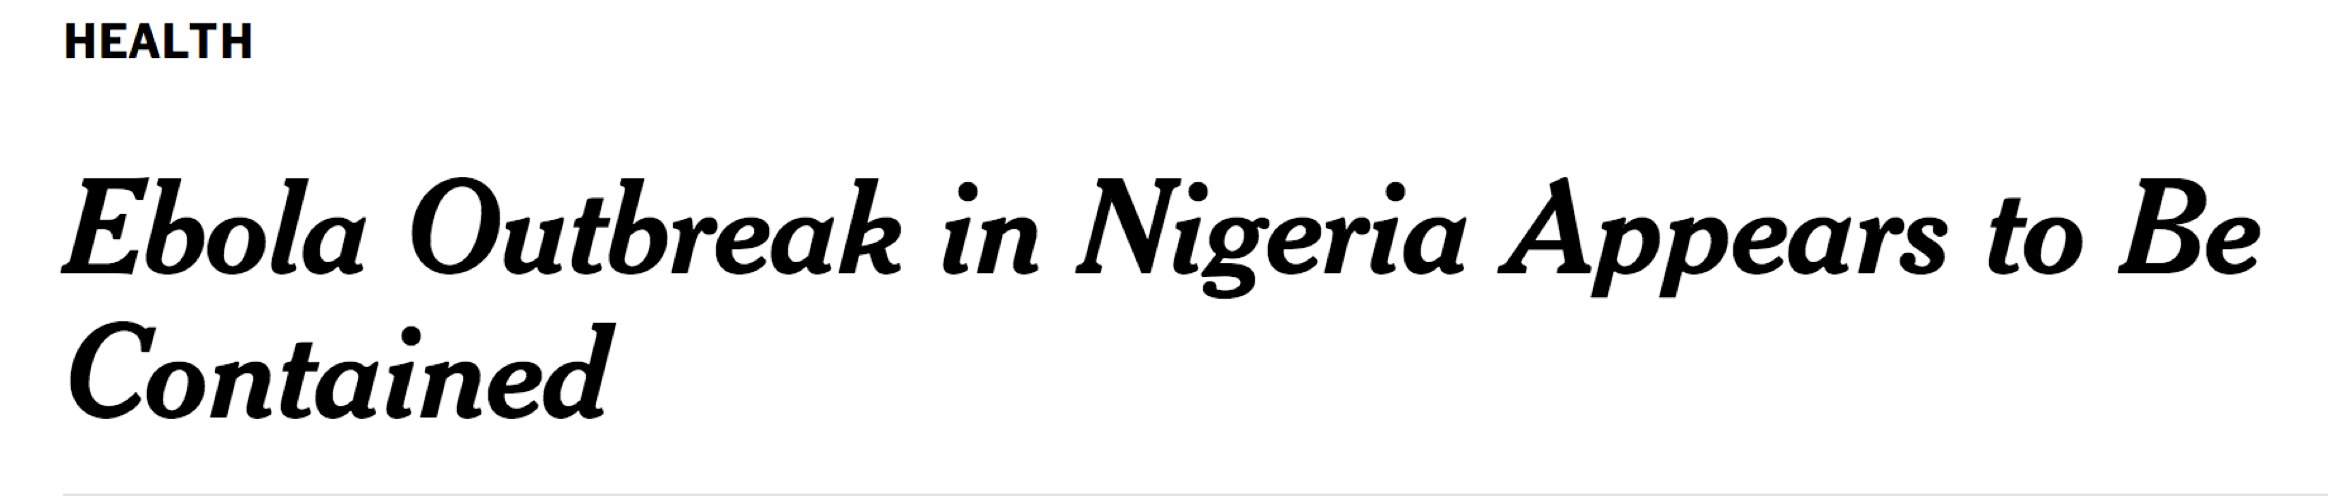 https://github-images.s3.amazonaws.com/skitch/Ebola_Outbreak_in_Nigeria_Appears_to_Be_Contained_-_NYTimes.com-20140930-163155.jpg